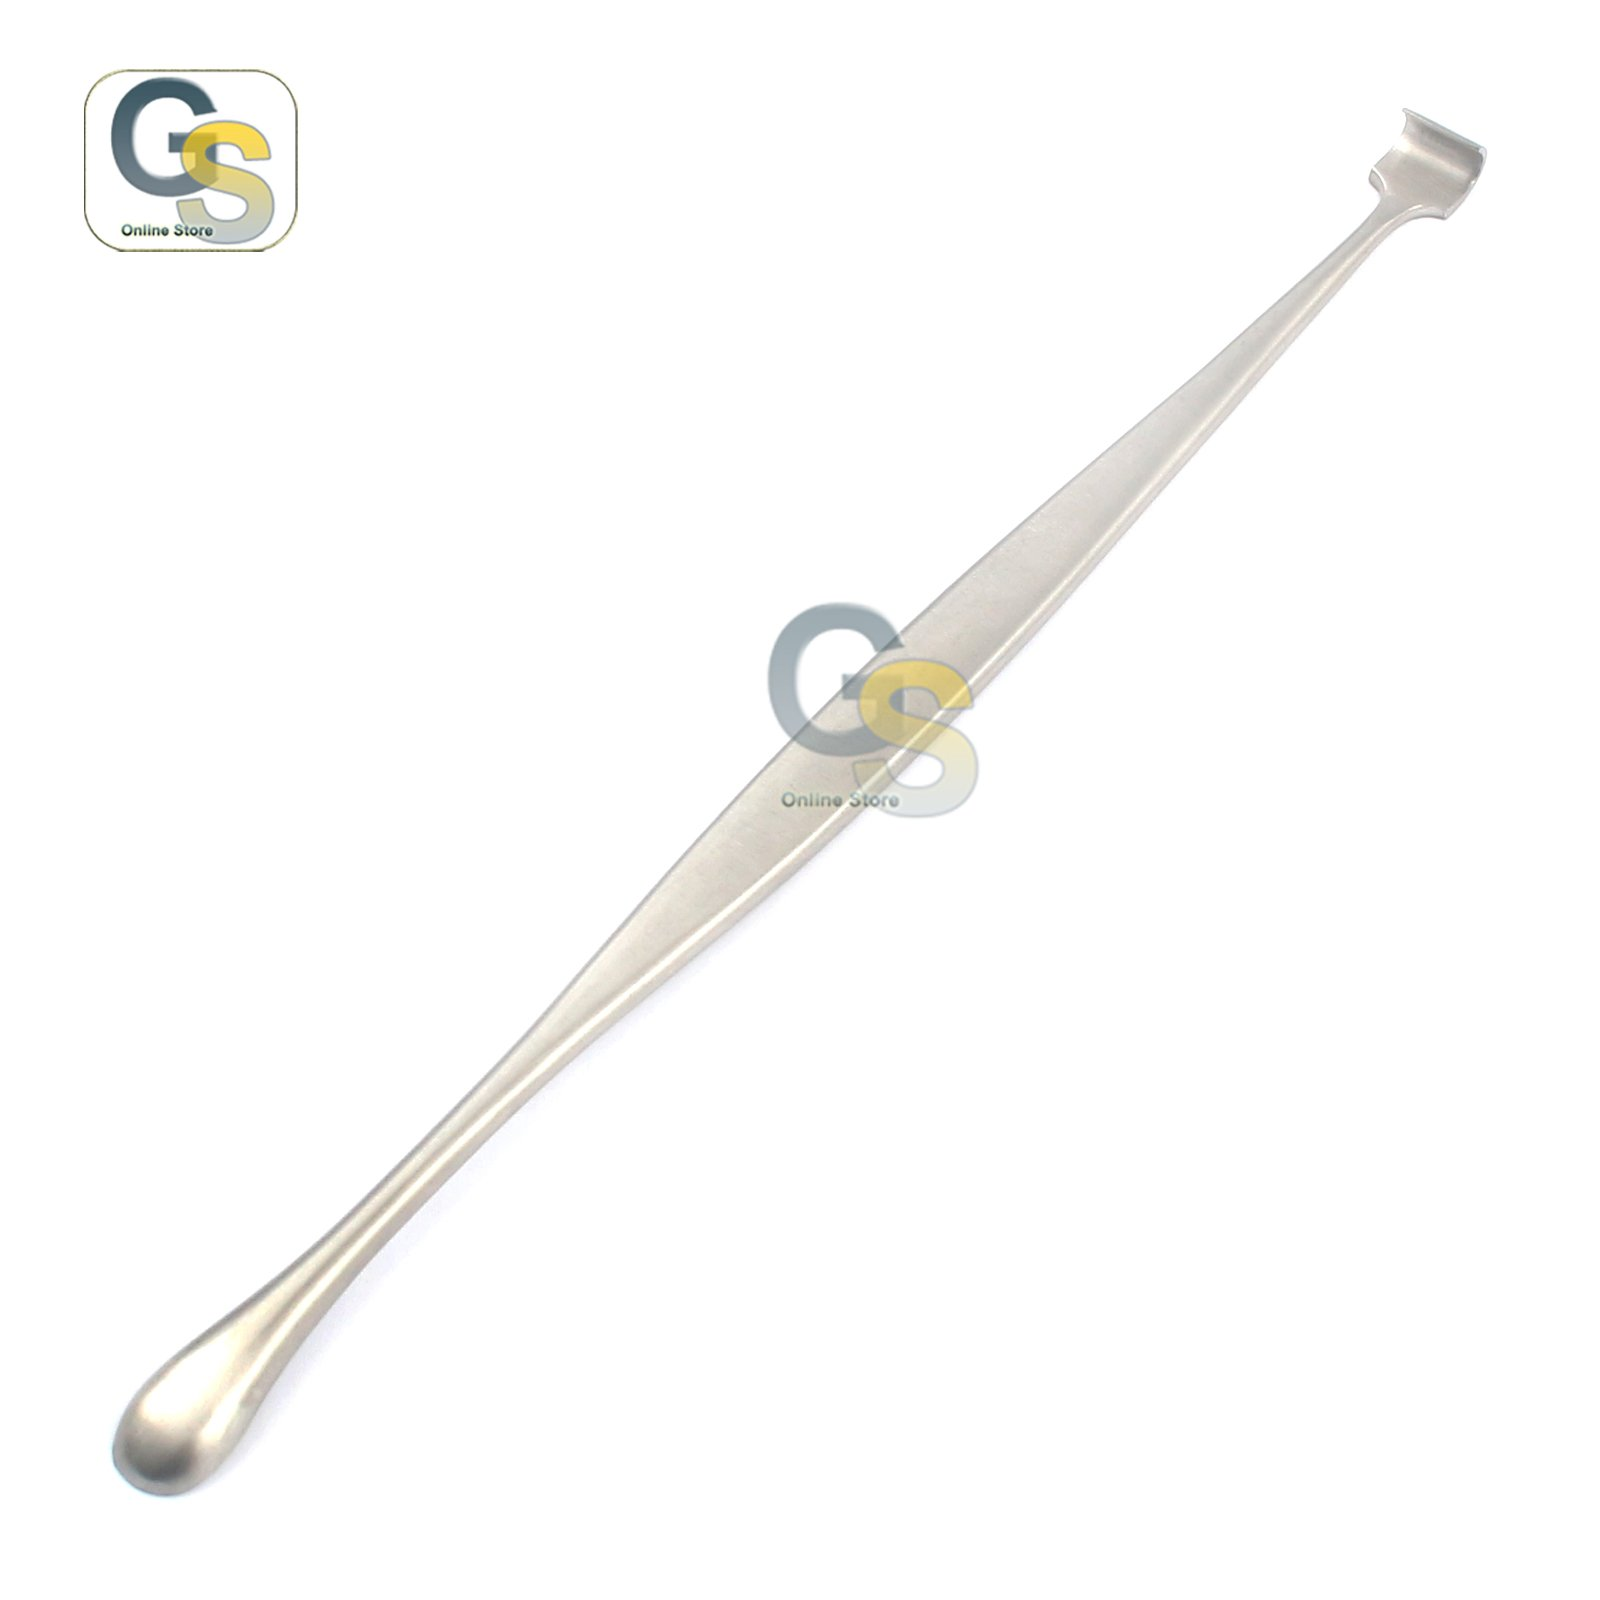 G.S HURD Tonsil Dissector Retractor Best Quality